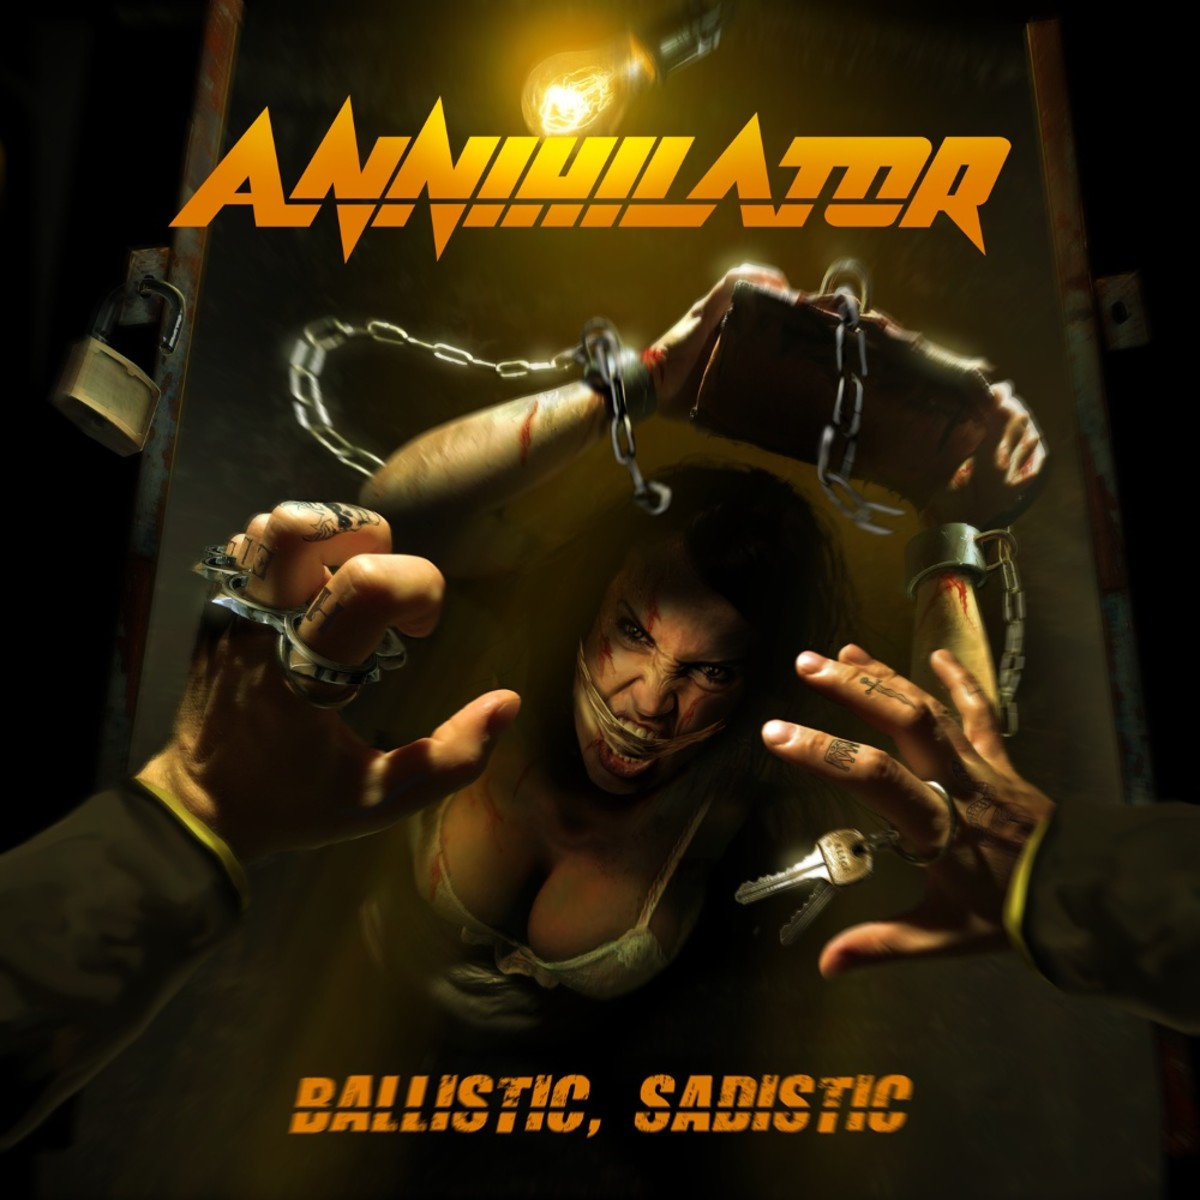 review-of-the-album-ballistic-sadistic-by-canadian-thrash-metal-band-annihilator